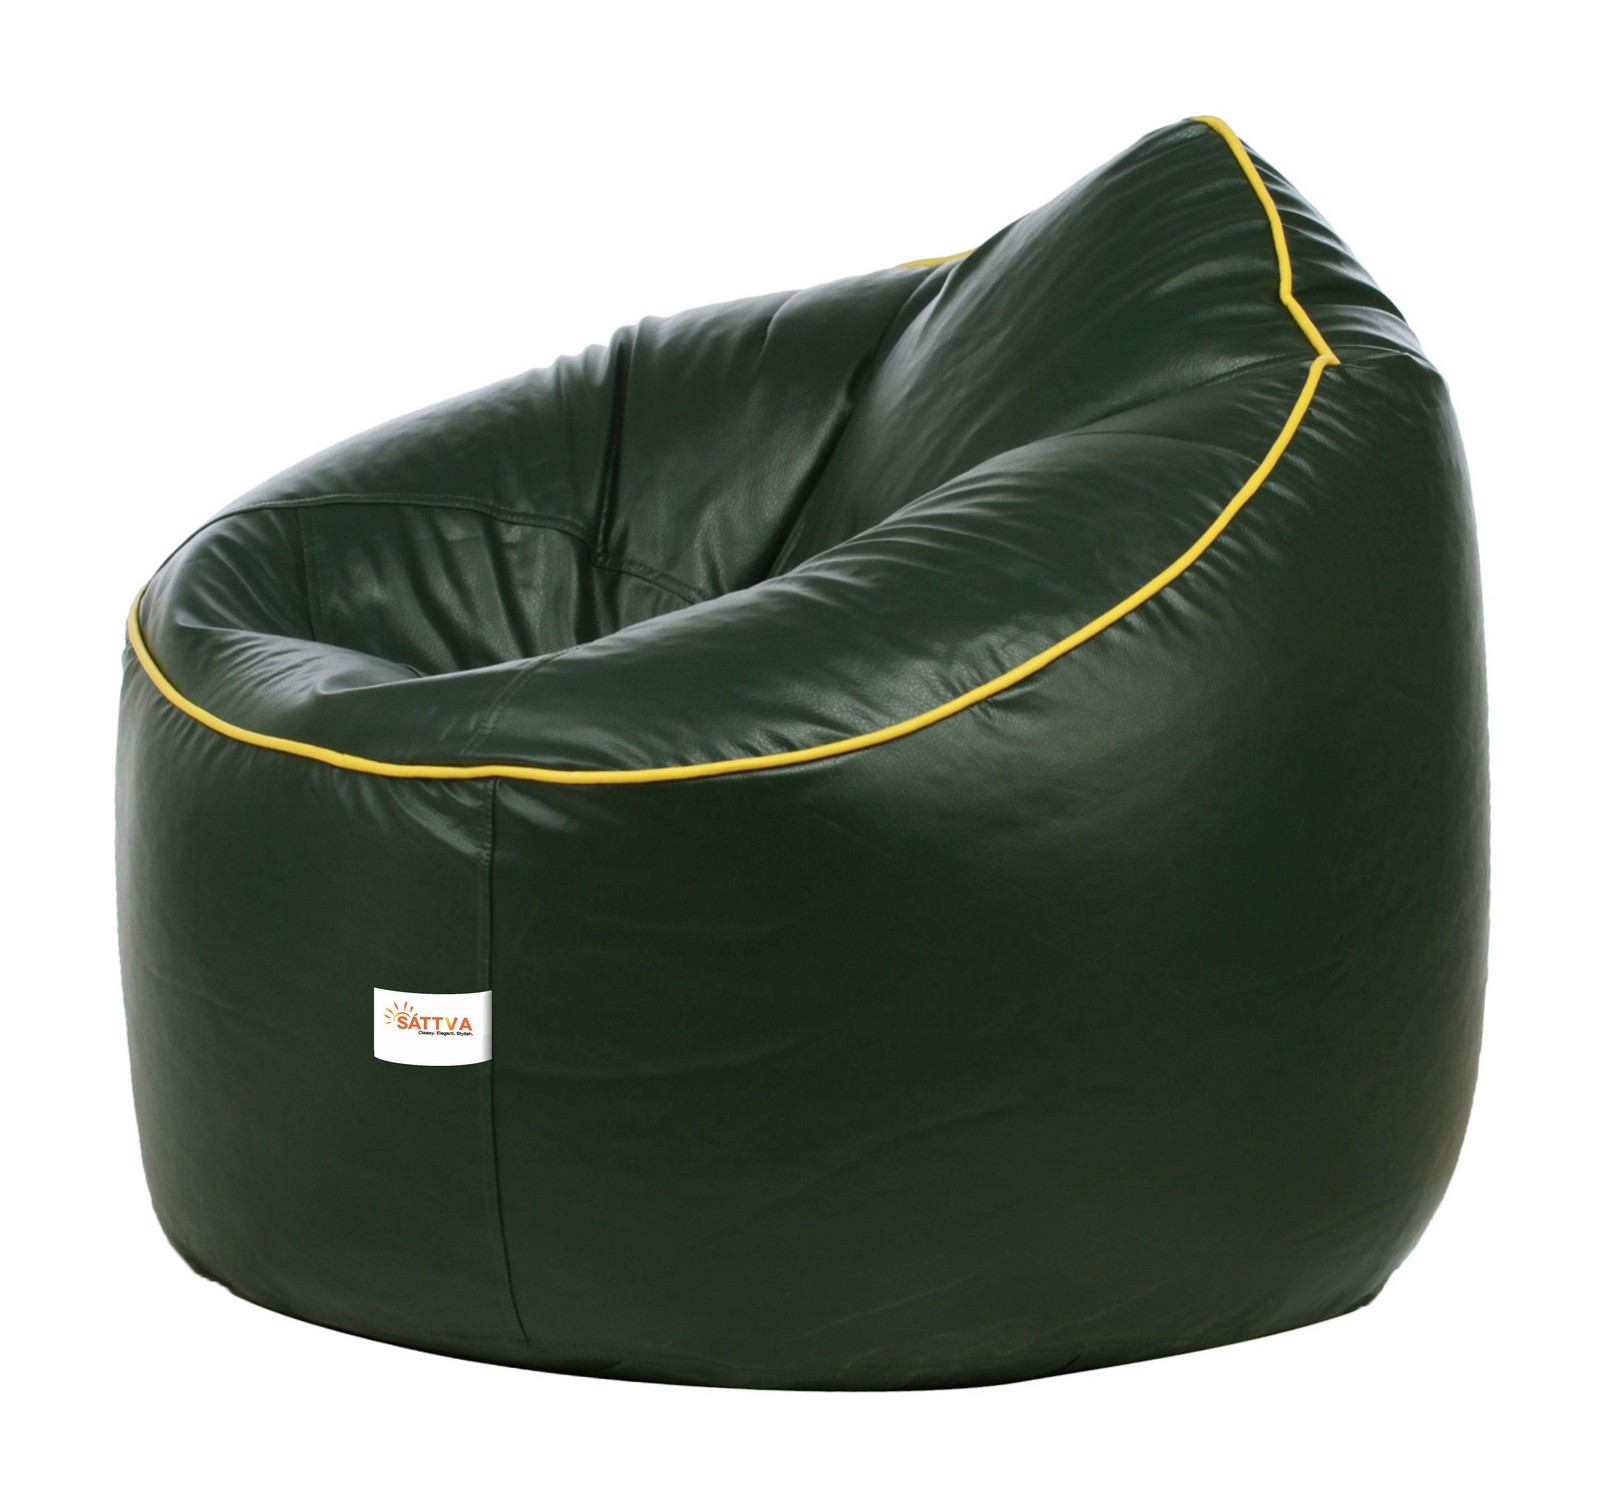 Sattva Muddha Sofa XXXL Bean Bag With Piping Design (with Beans) XXXL - Dark Green With Yellow Piping (XXXL, Dark Green With Yellow Piping)